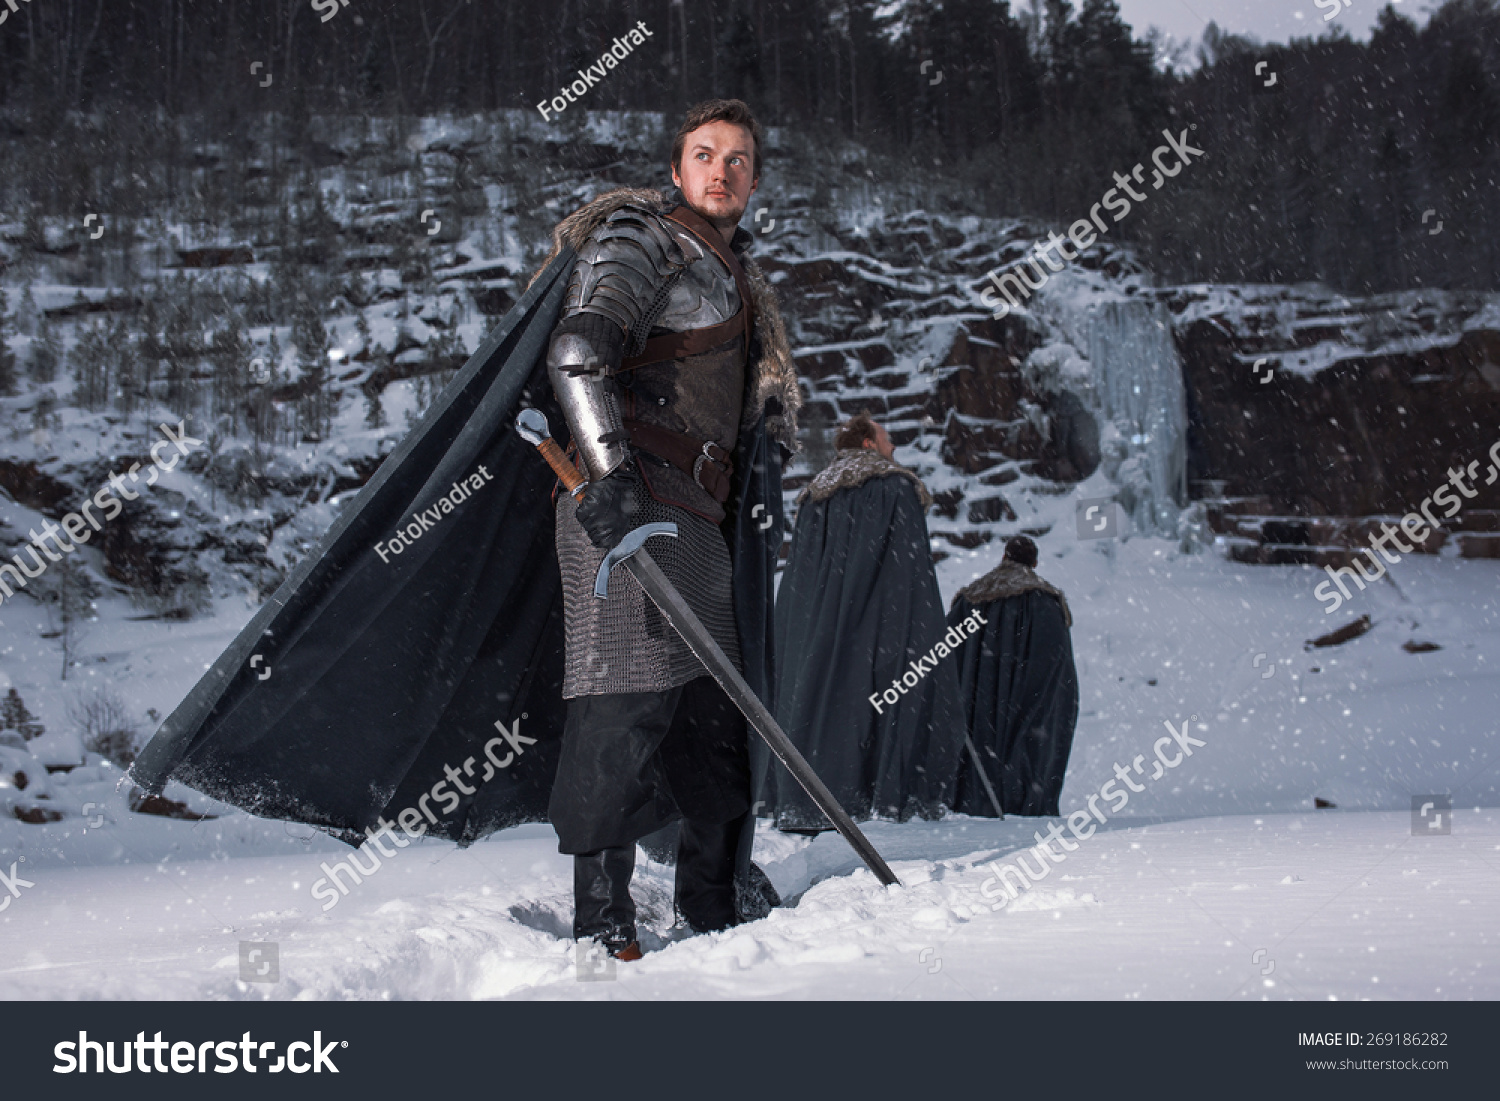 medieval knight with sword in armor as style game of. Black Bedroom Furniture Sets. Home Design Ideas